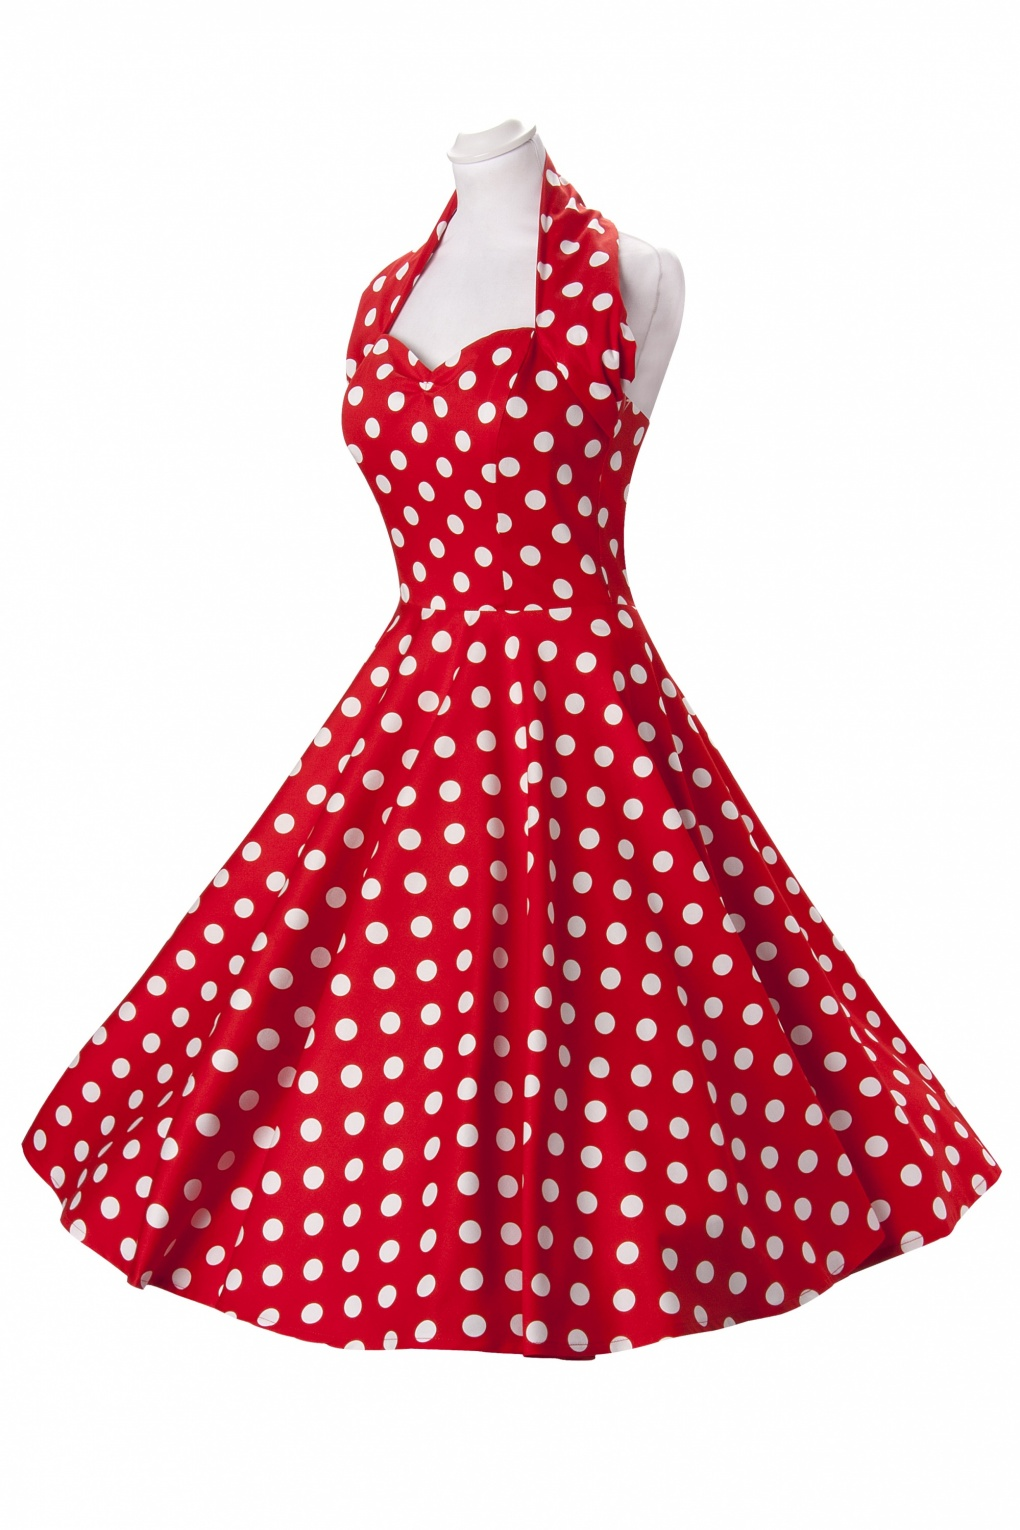 Red_with_White_Polka_Dot_50s_Swing_Dress